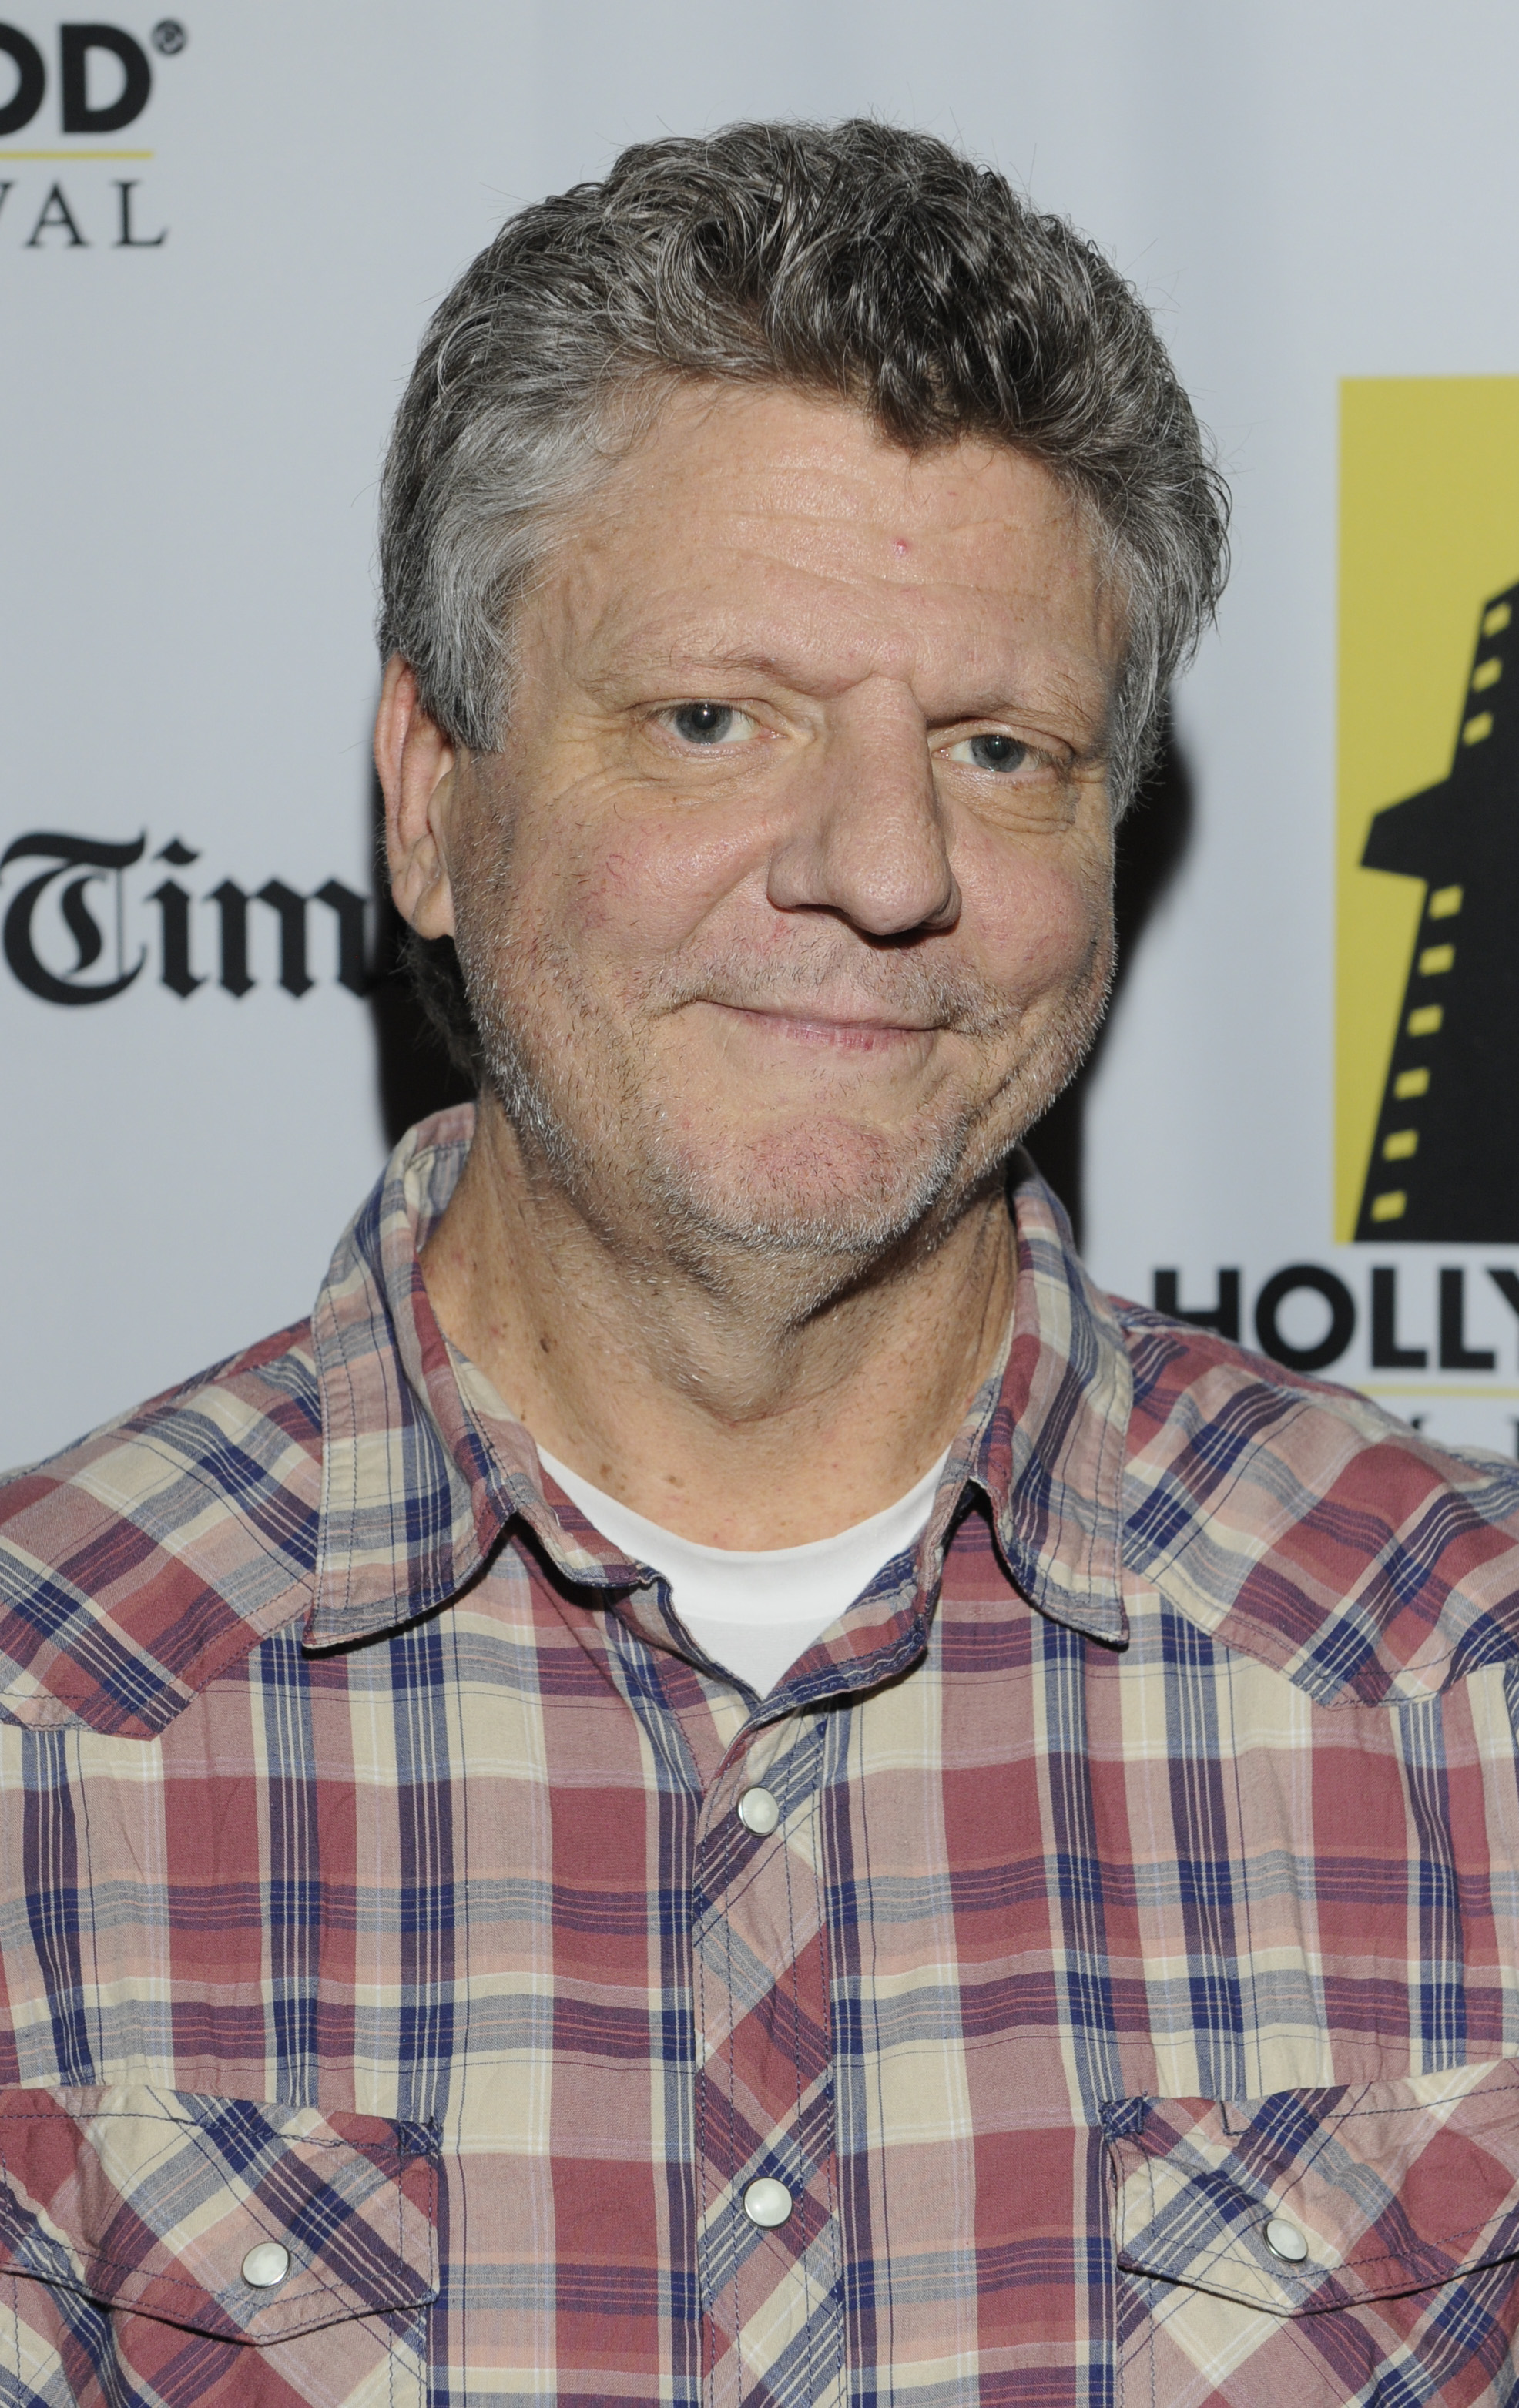 Brent Briscoe, veteran character actor from Twin Peaks and The Green Mile, dies at 56